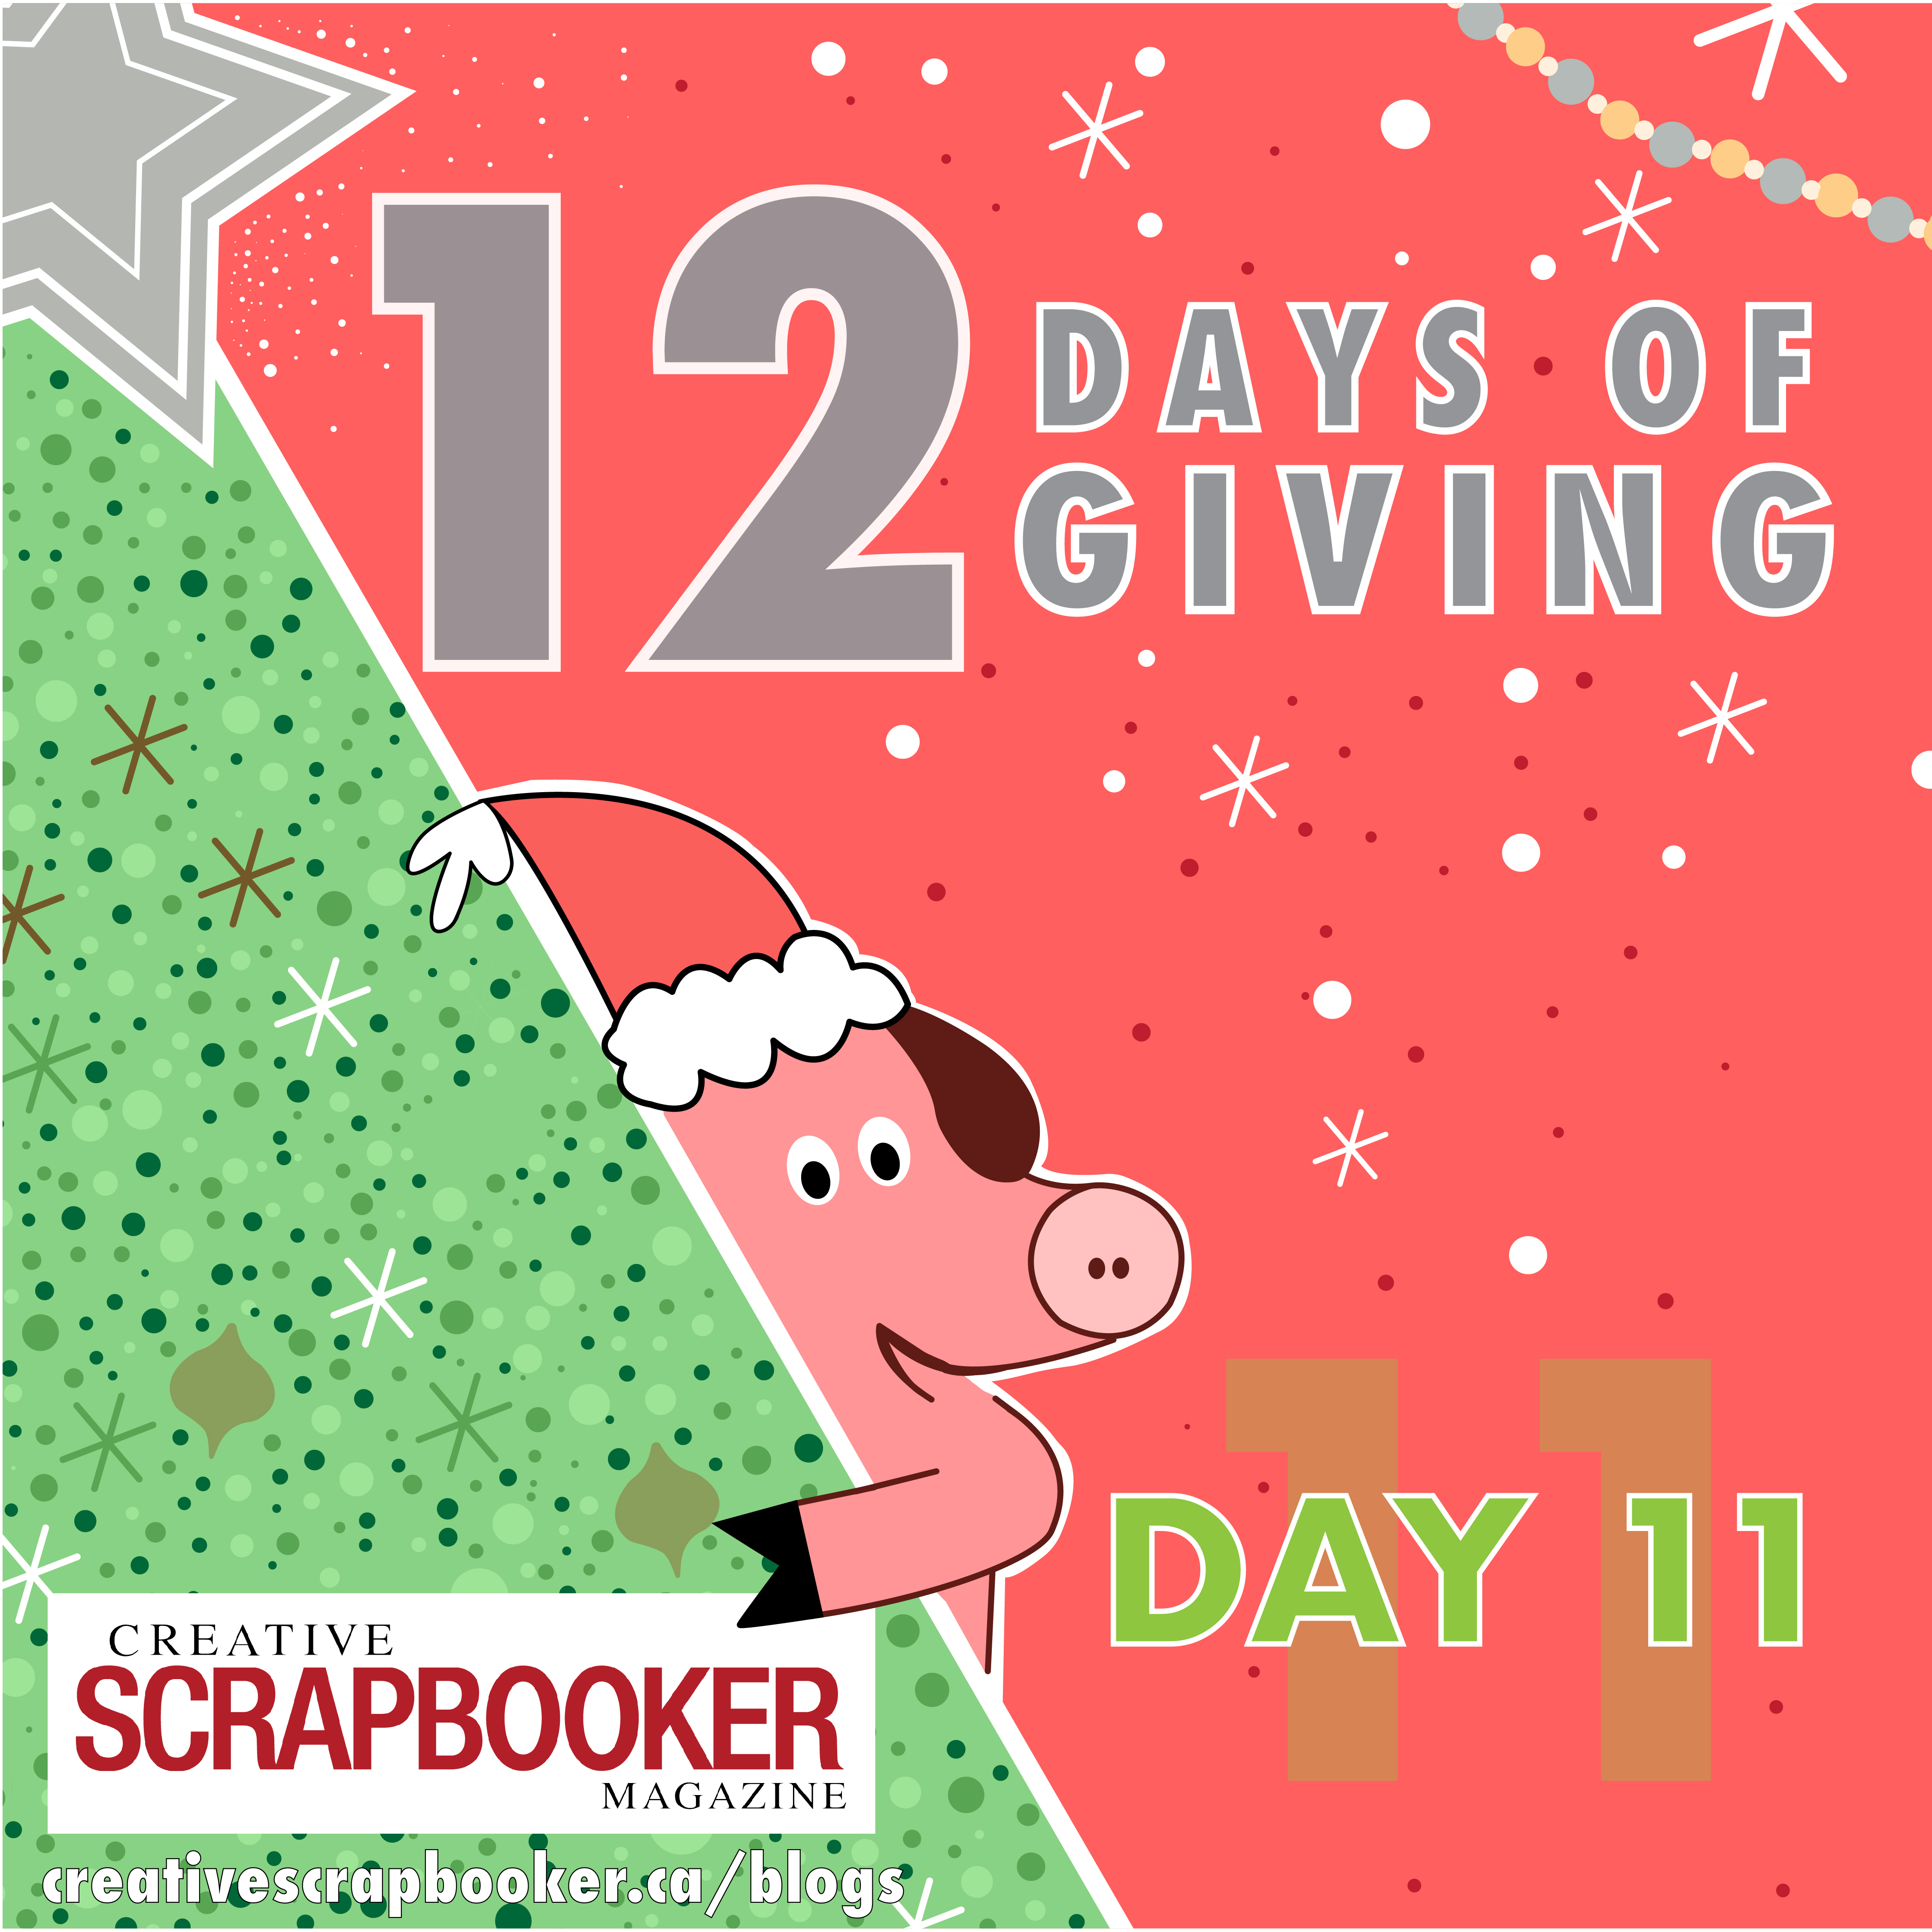 Day 11 of 12 Days of Giving | Creative Scrapbooker Magazine